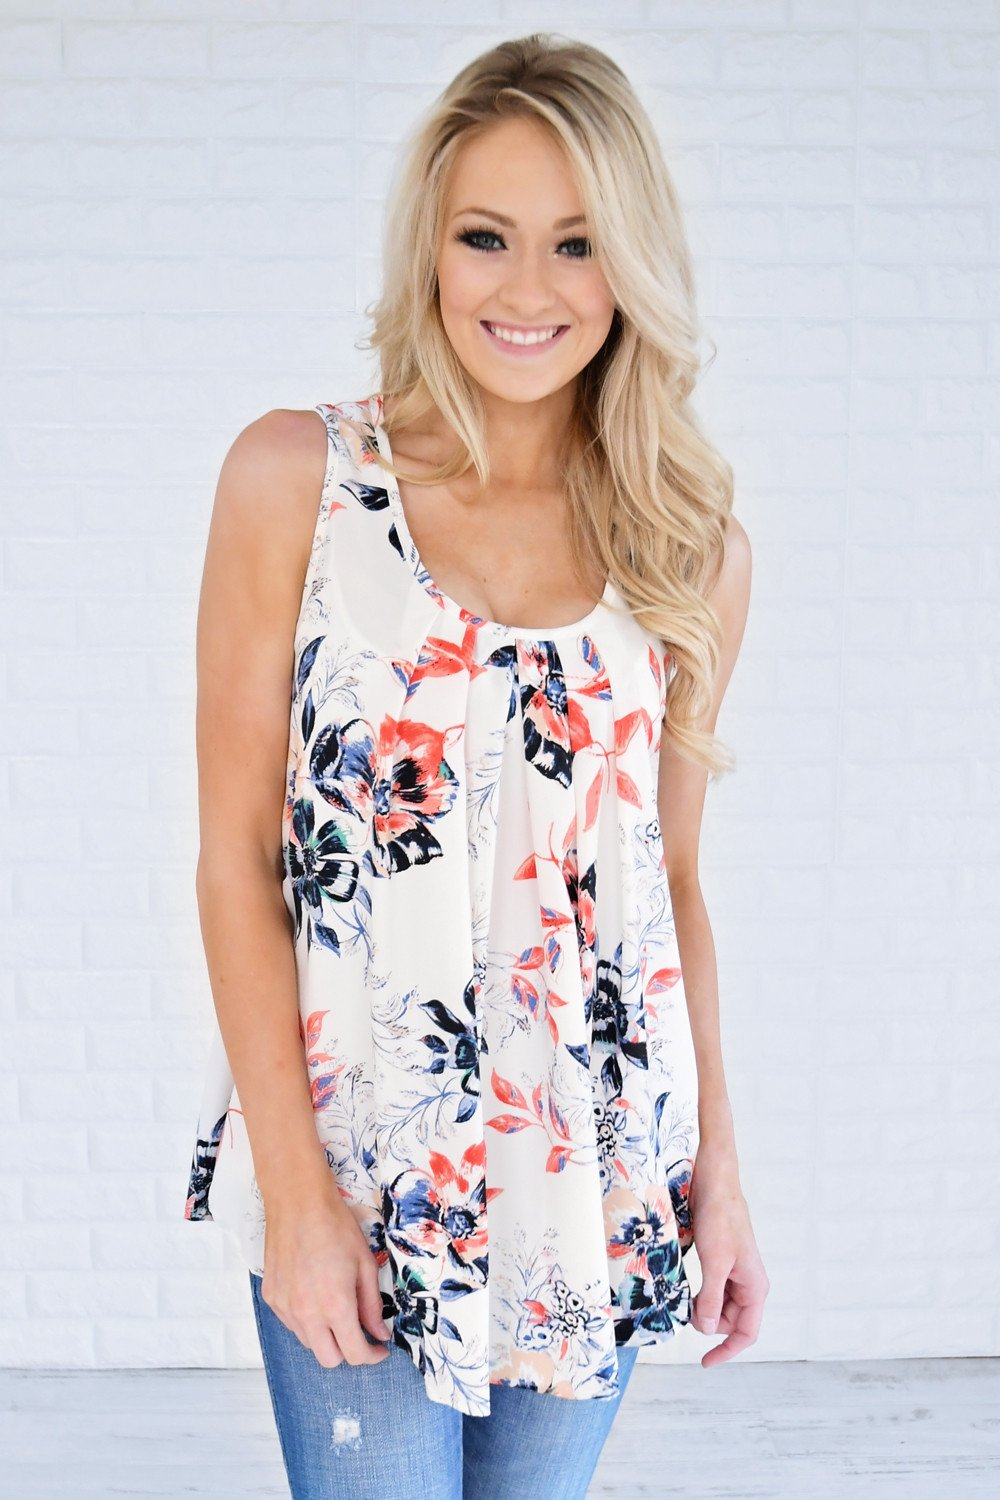 Take Your Time Floral Tank Top